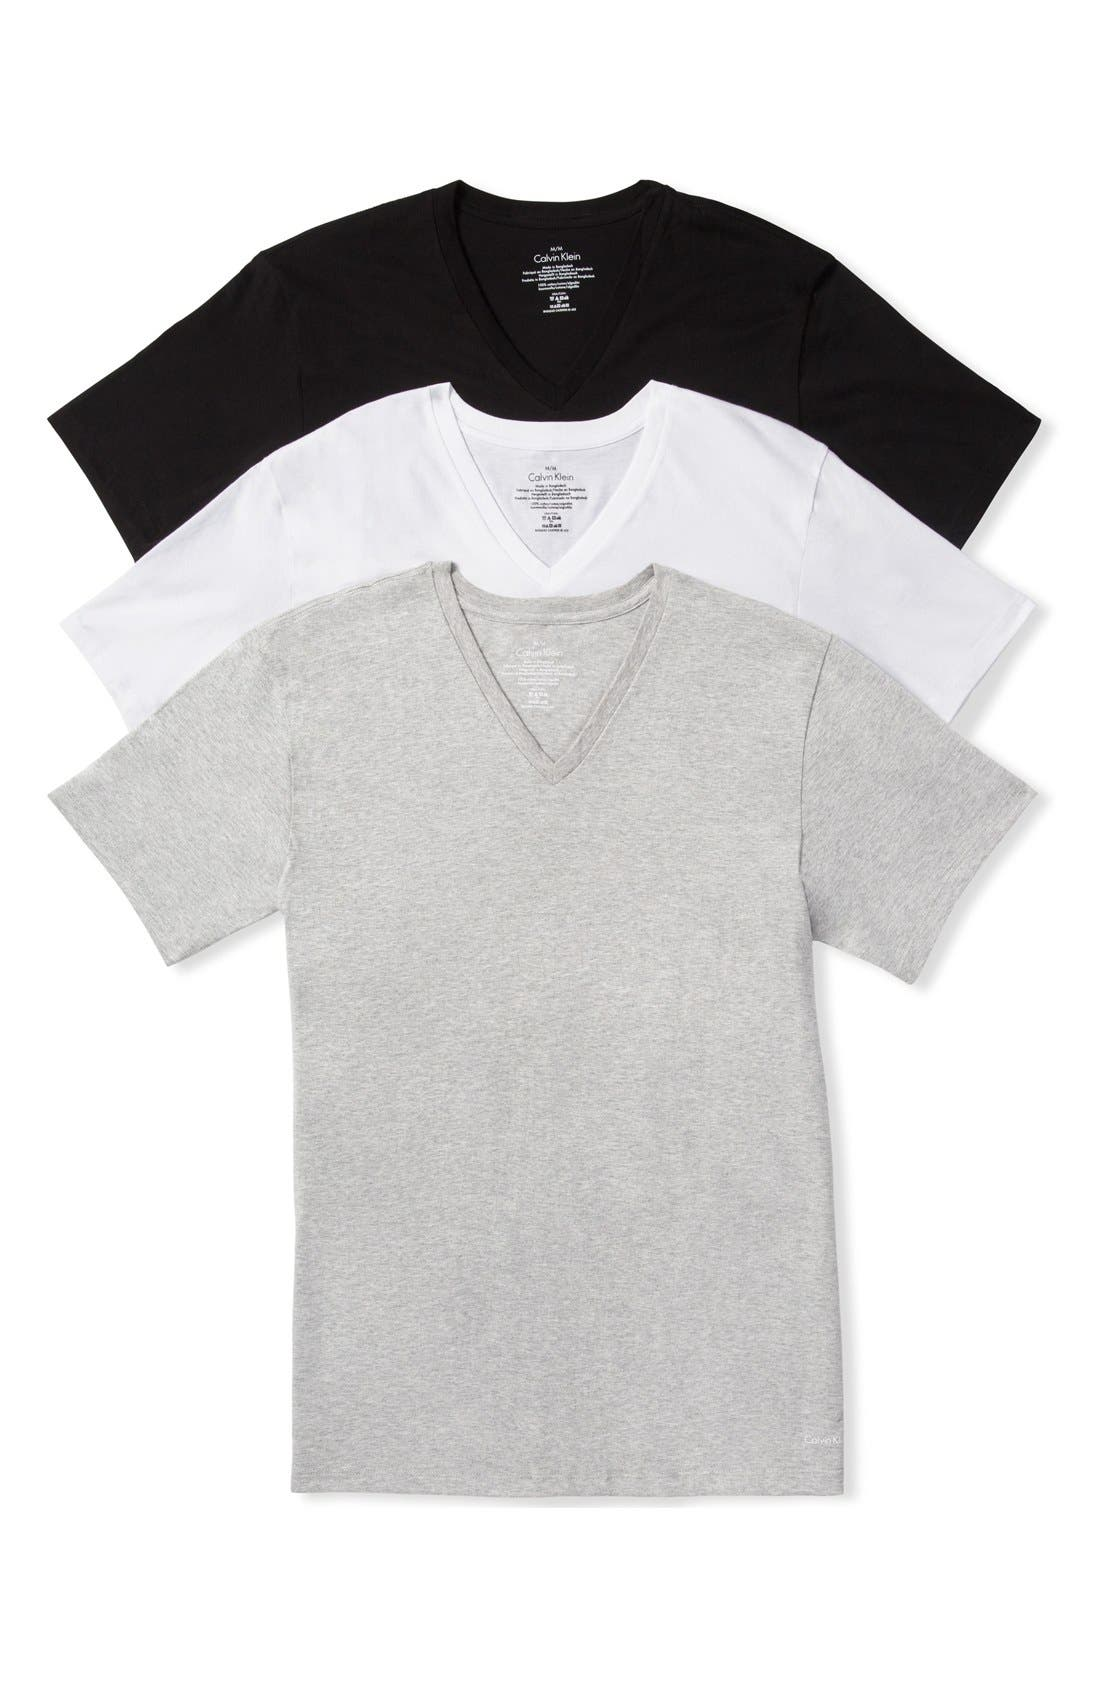 Assorted 3-Pack Classic Fit Cotton V-Neck T-Shirt,                             Main thumbnail 1, color,                             Heather Grey/ White/ Black